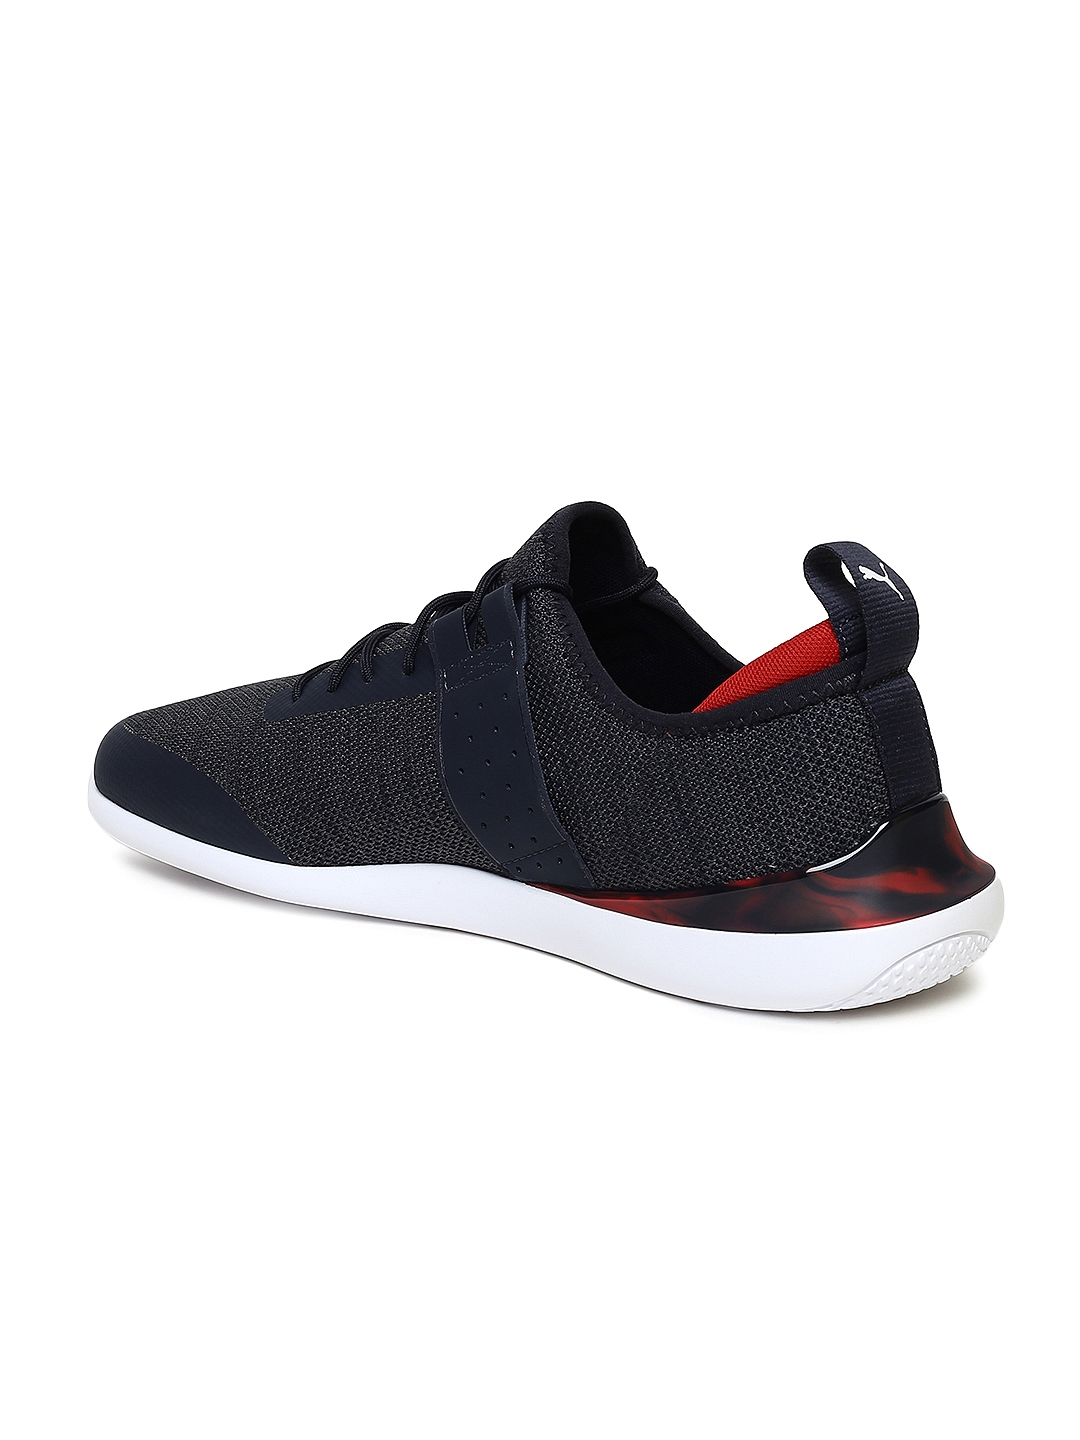 b9abf2639 Buy Puma Men Navy Blue RBR Evo Cat Racer Sneakers - Casual Shoes for ...